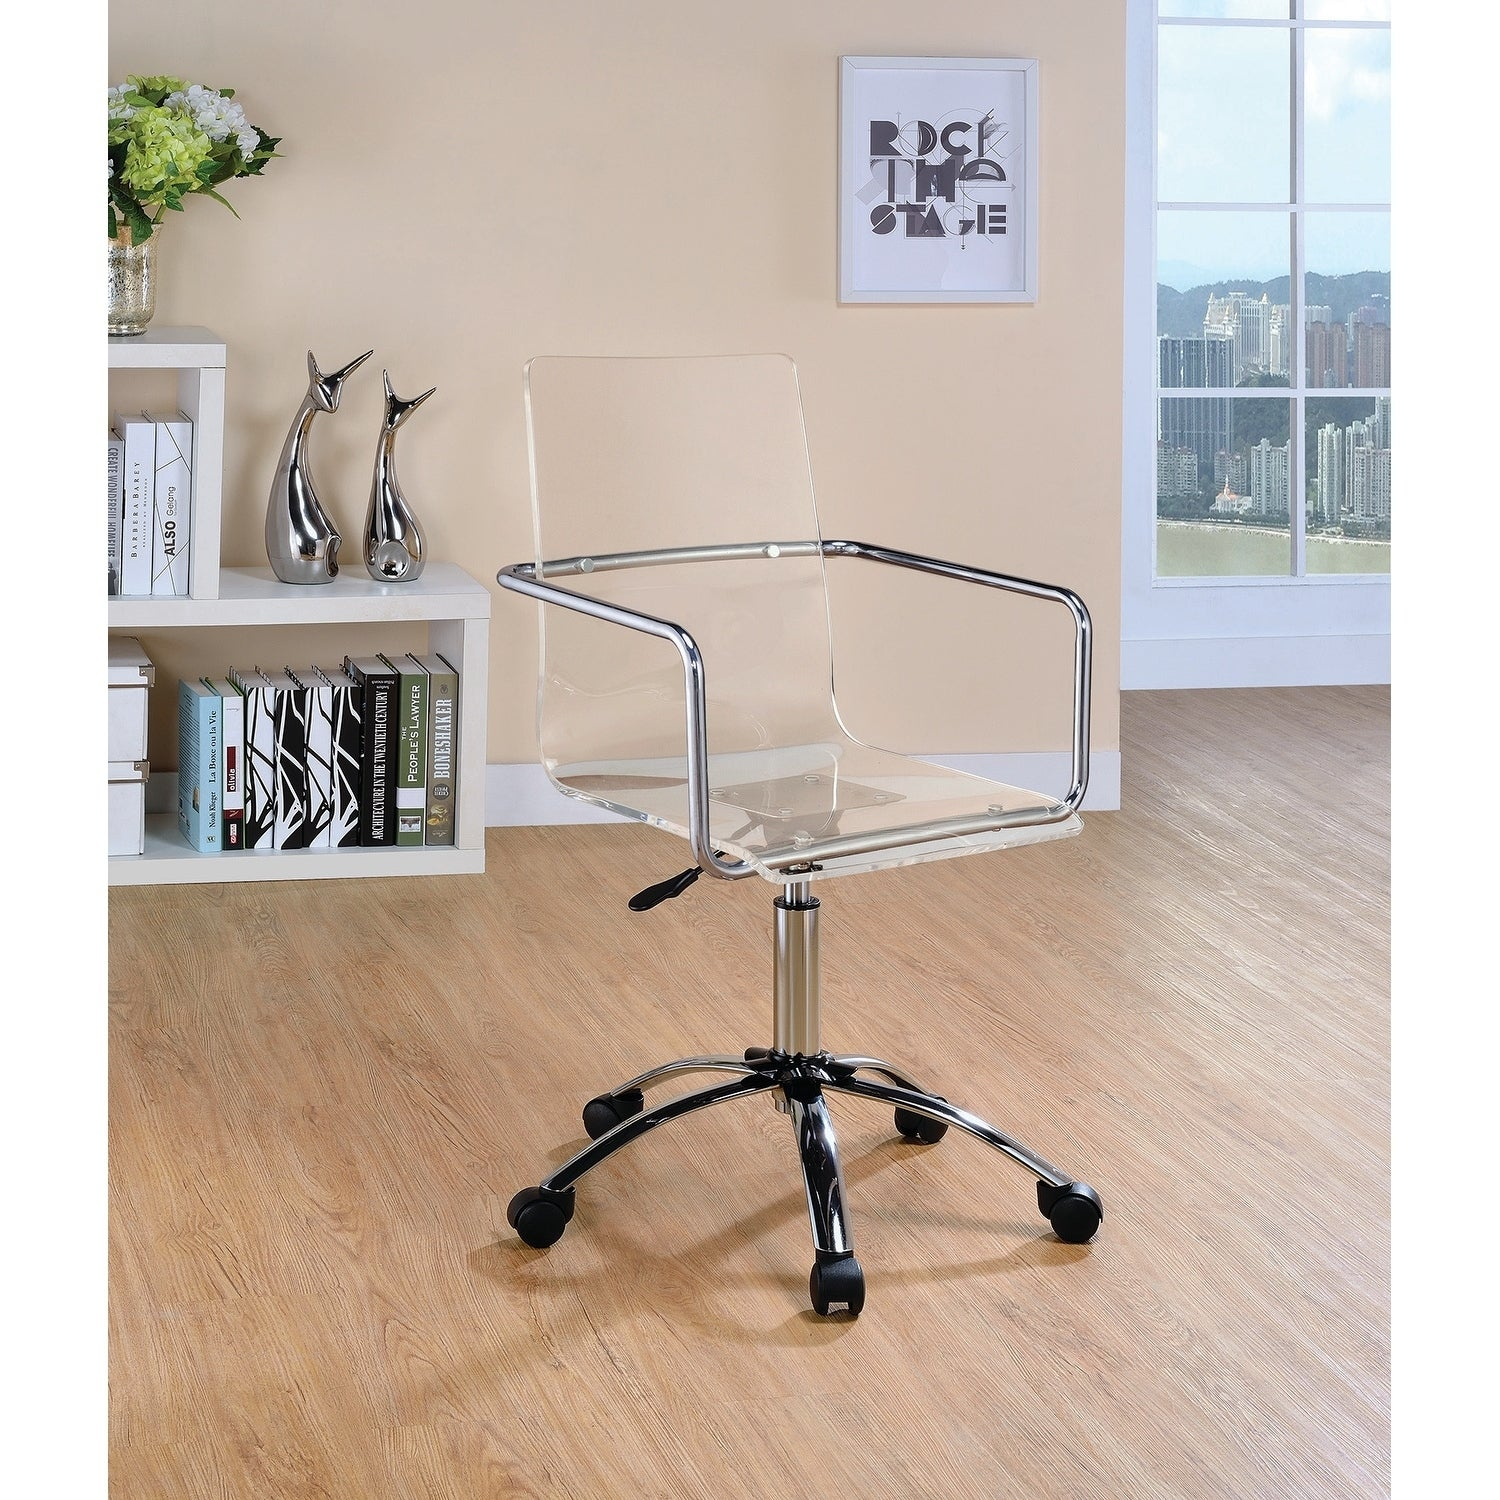 Shop contemporary clear acrylic office chair free shipping today overstock com 20875408